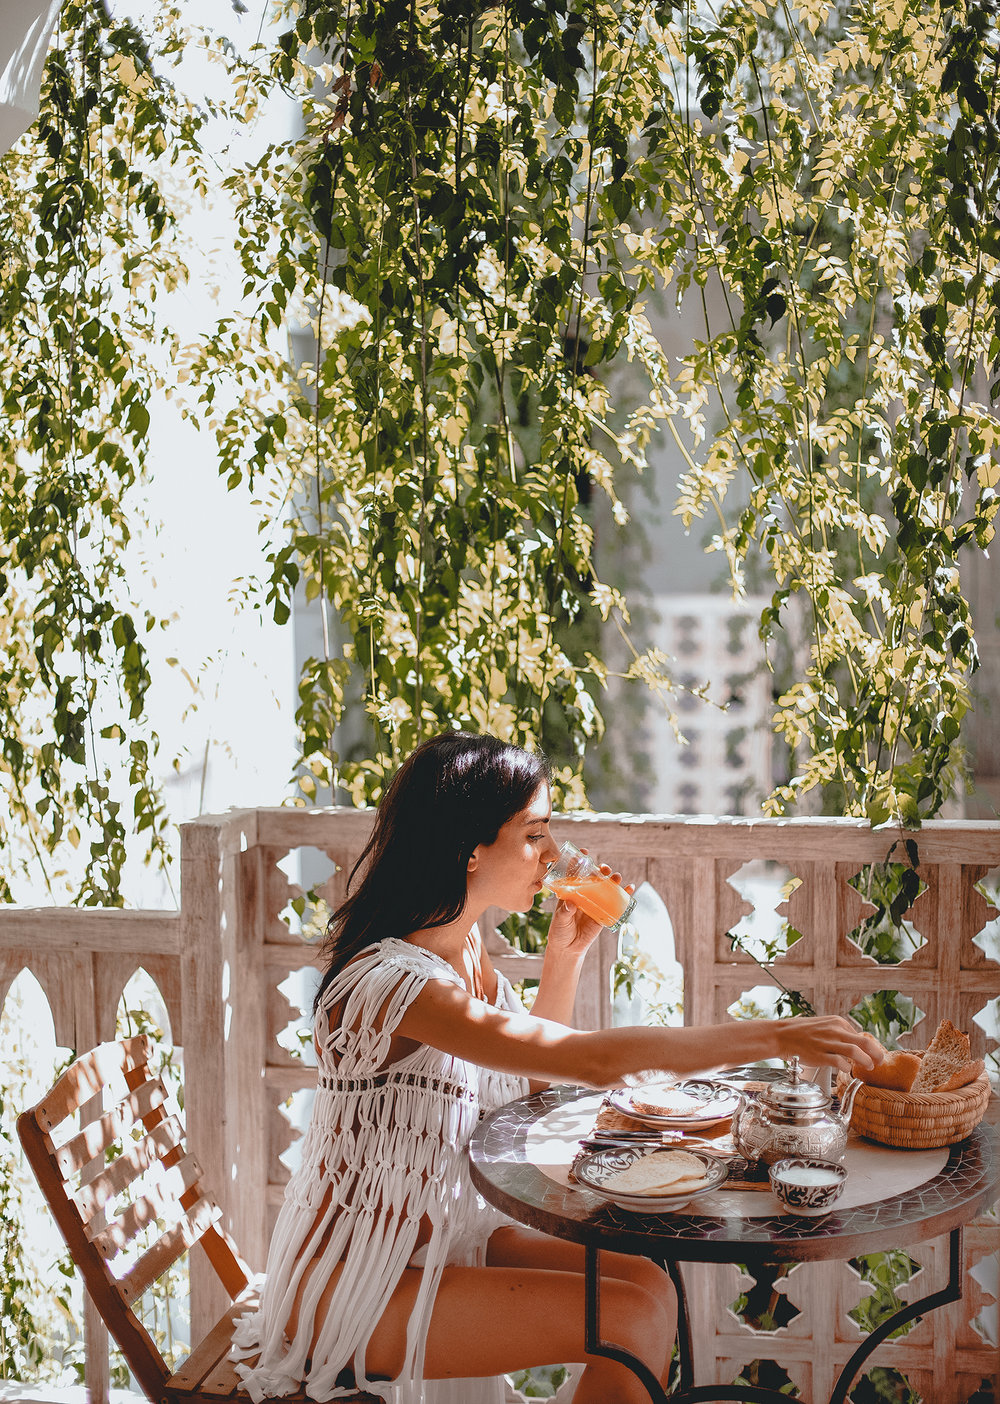 Breakfast at Riad Safa in front of our room//Wearing Mayrah